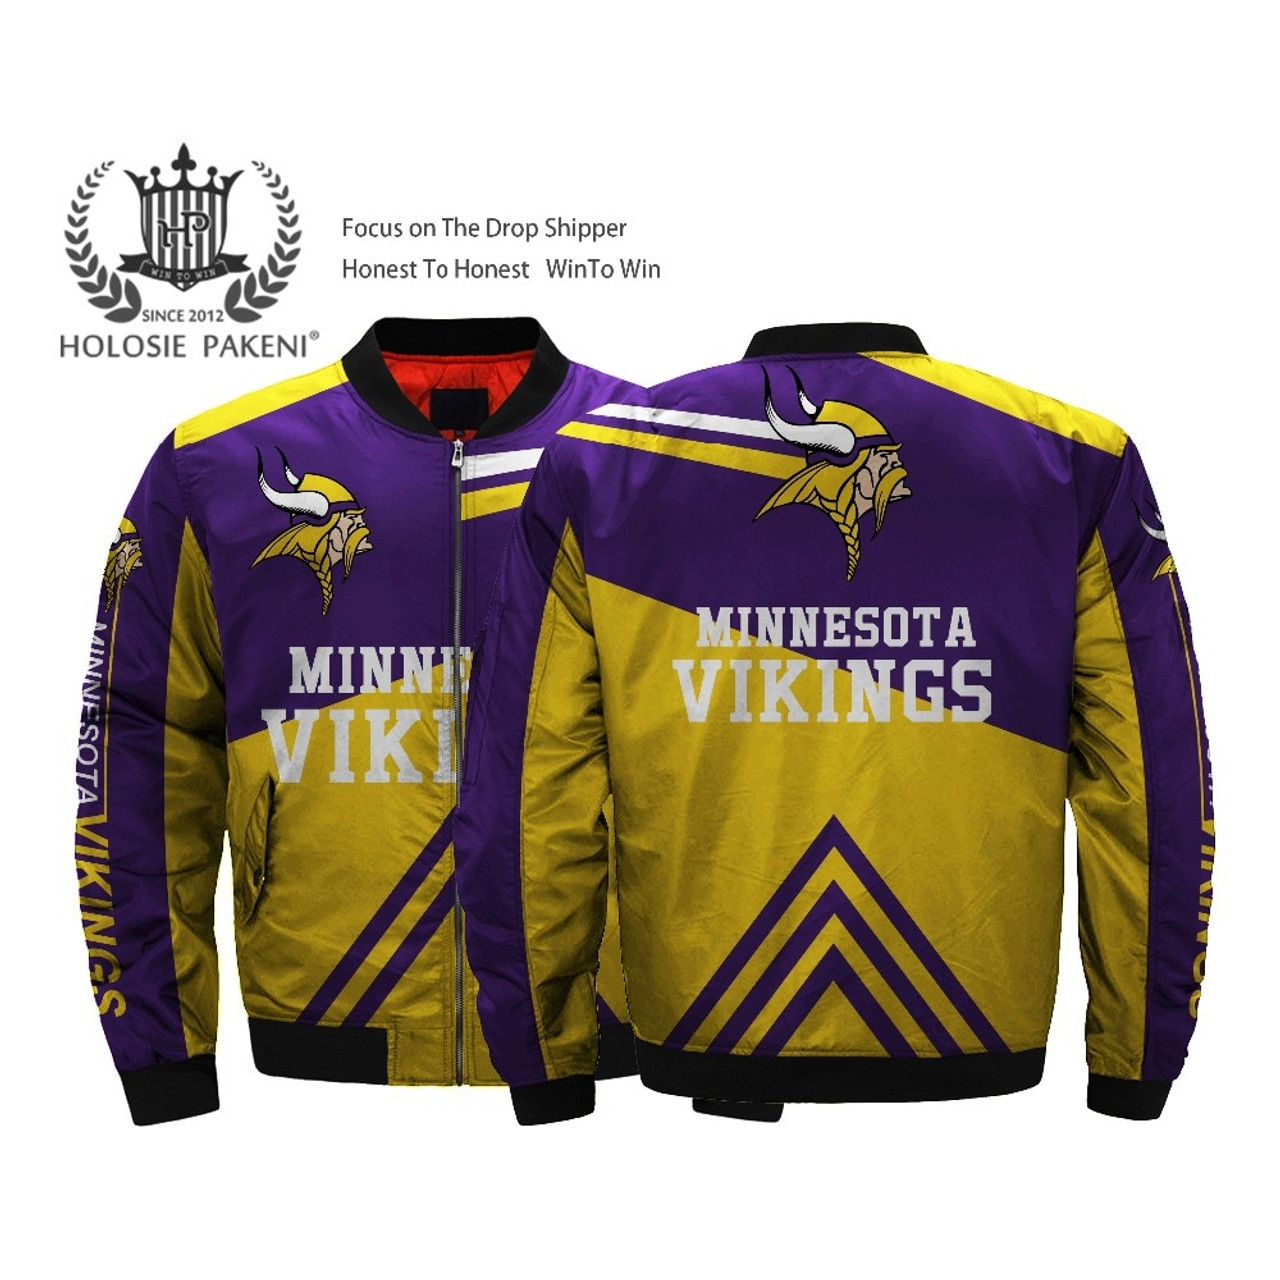 online store 540ad c56fc **(OFFICIALLY-LICENSED-N.F.L.MINNESOTA-VIKINGS-JACKETS/CLASSIC-VIKINGS-TEAM-COLORS  & OFFICIAL-VIKINGS-LOGOS,BOMBER/MA-1 ...